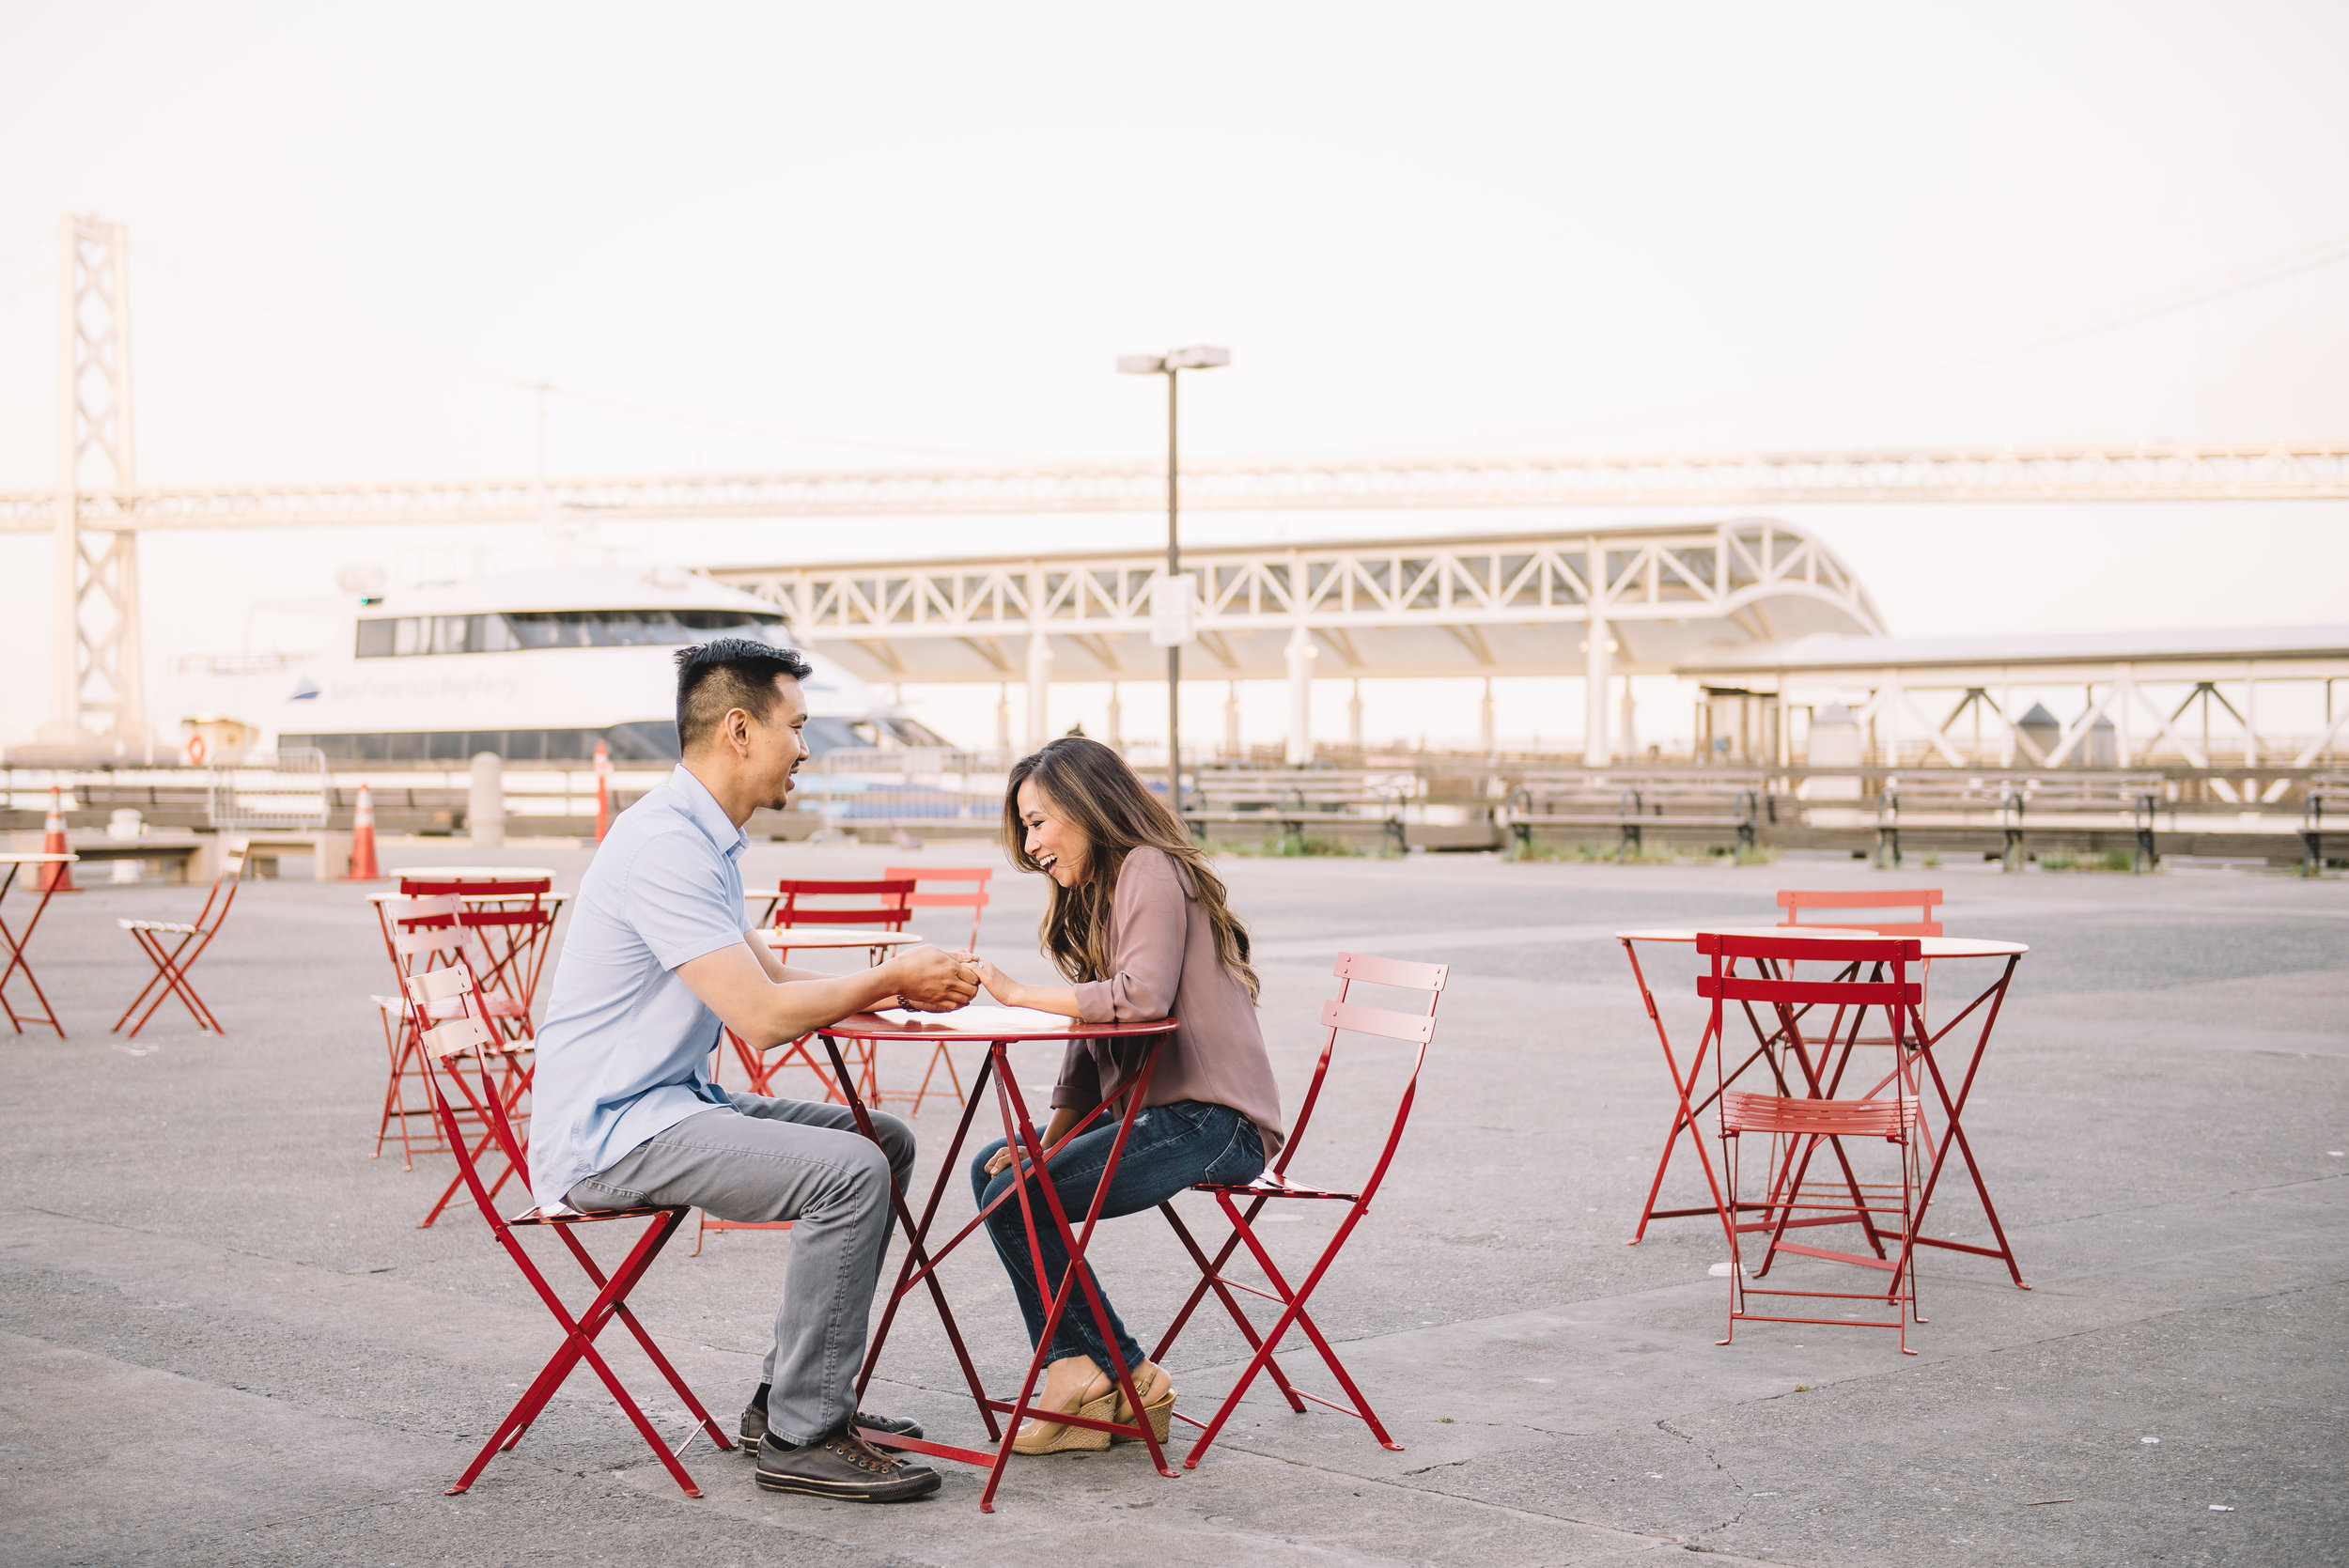 jennifer-jayn-photography-san-francisco-engagement-session-06.jpg